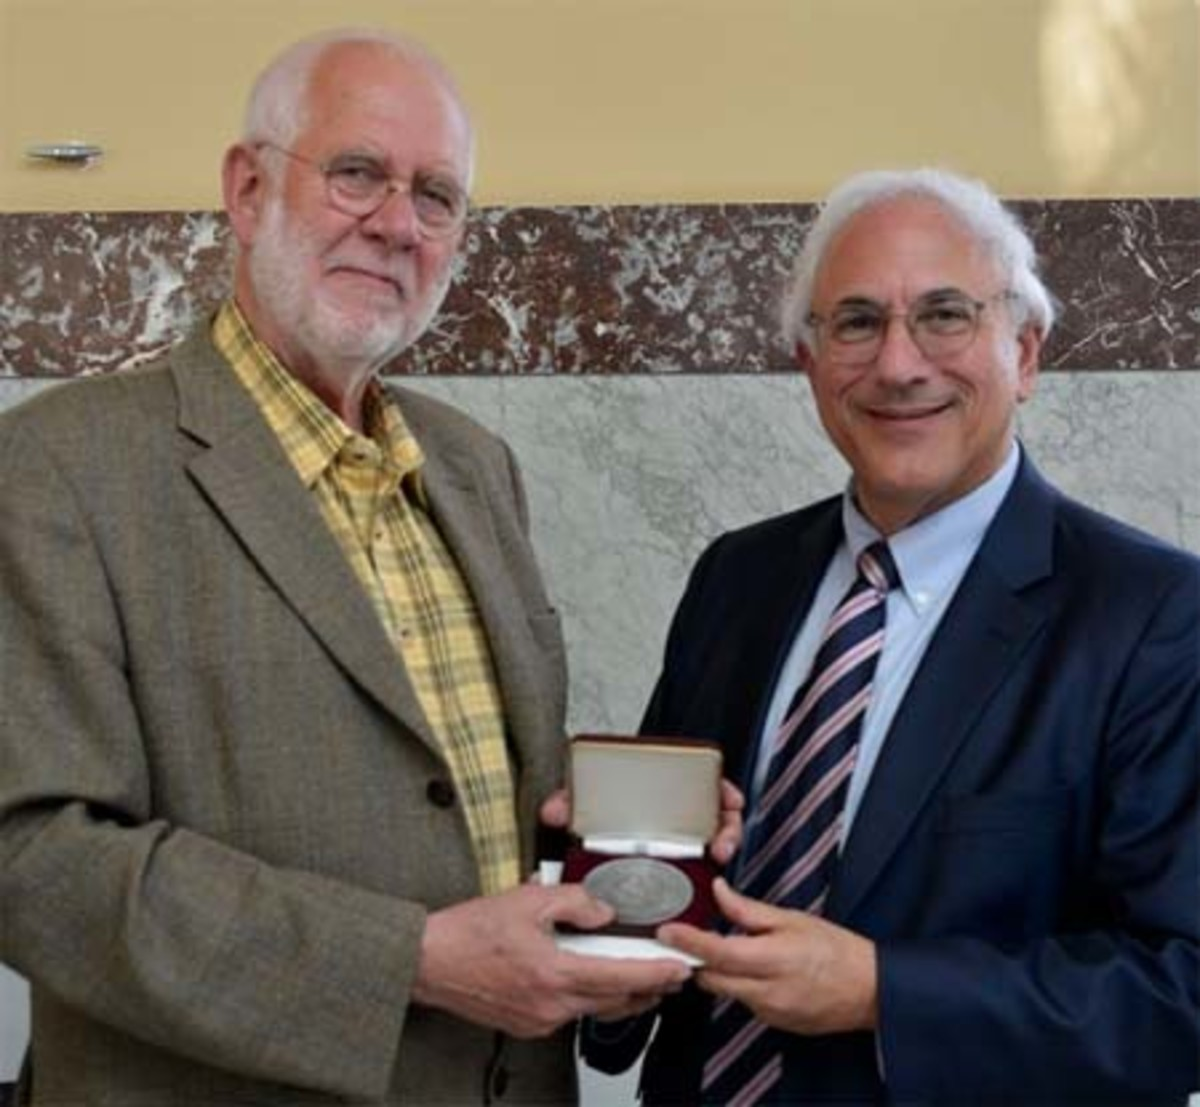 Geer Steyn, left, is presented with the J. Sanford Saltus Award by Donald Scarinci, right, chairman of the American Numismatic Society's Saltus Award Committee. (Image courtesy http://donaldscarinci.com)